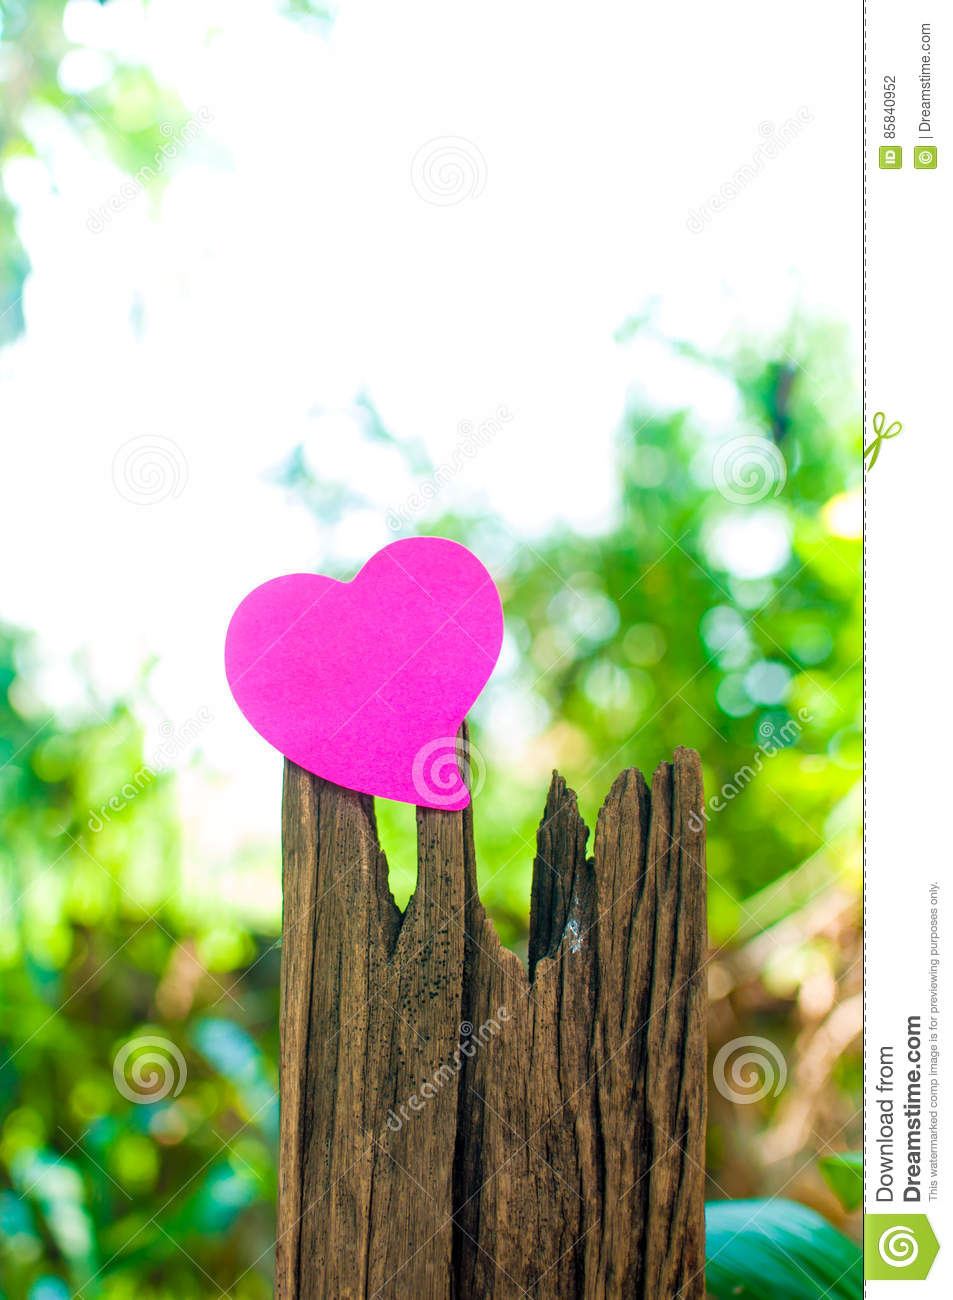 Blank note pad or sticky notes pink on timber with bokeh sunlight outdoor background